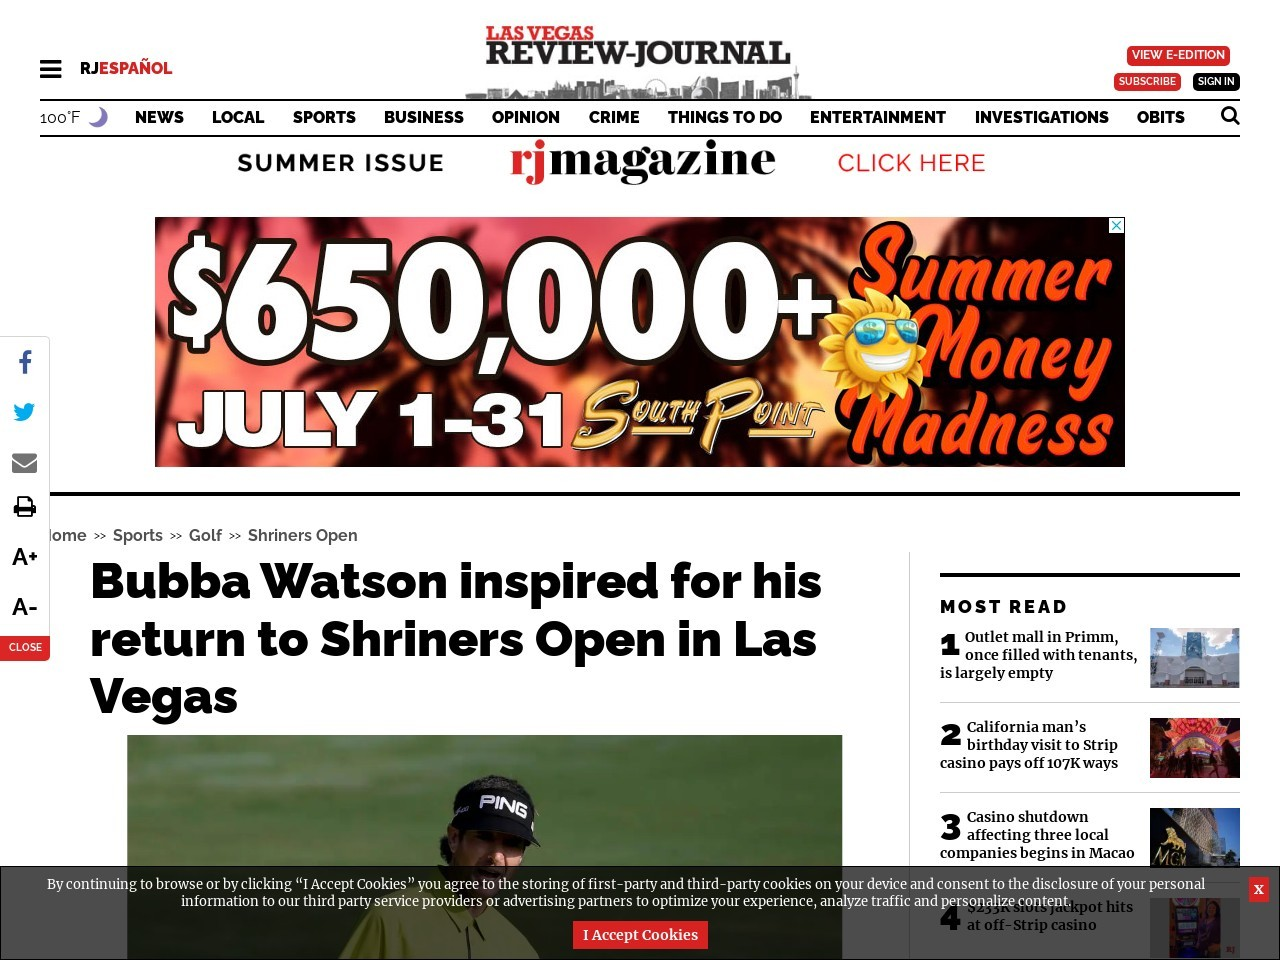 Bubba Watson inspired for his return to Shriners Open in Las Vegas